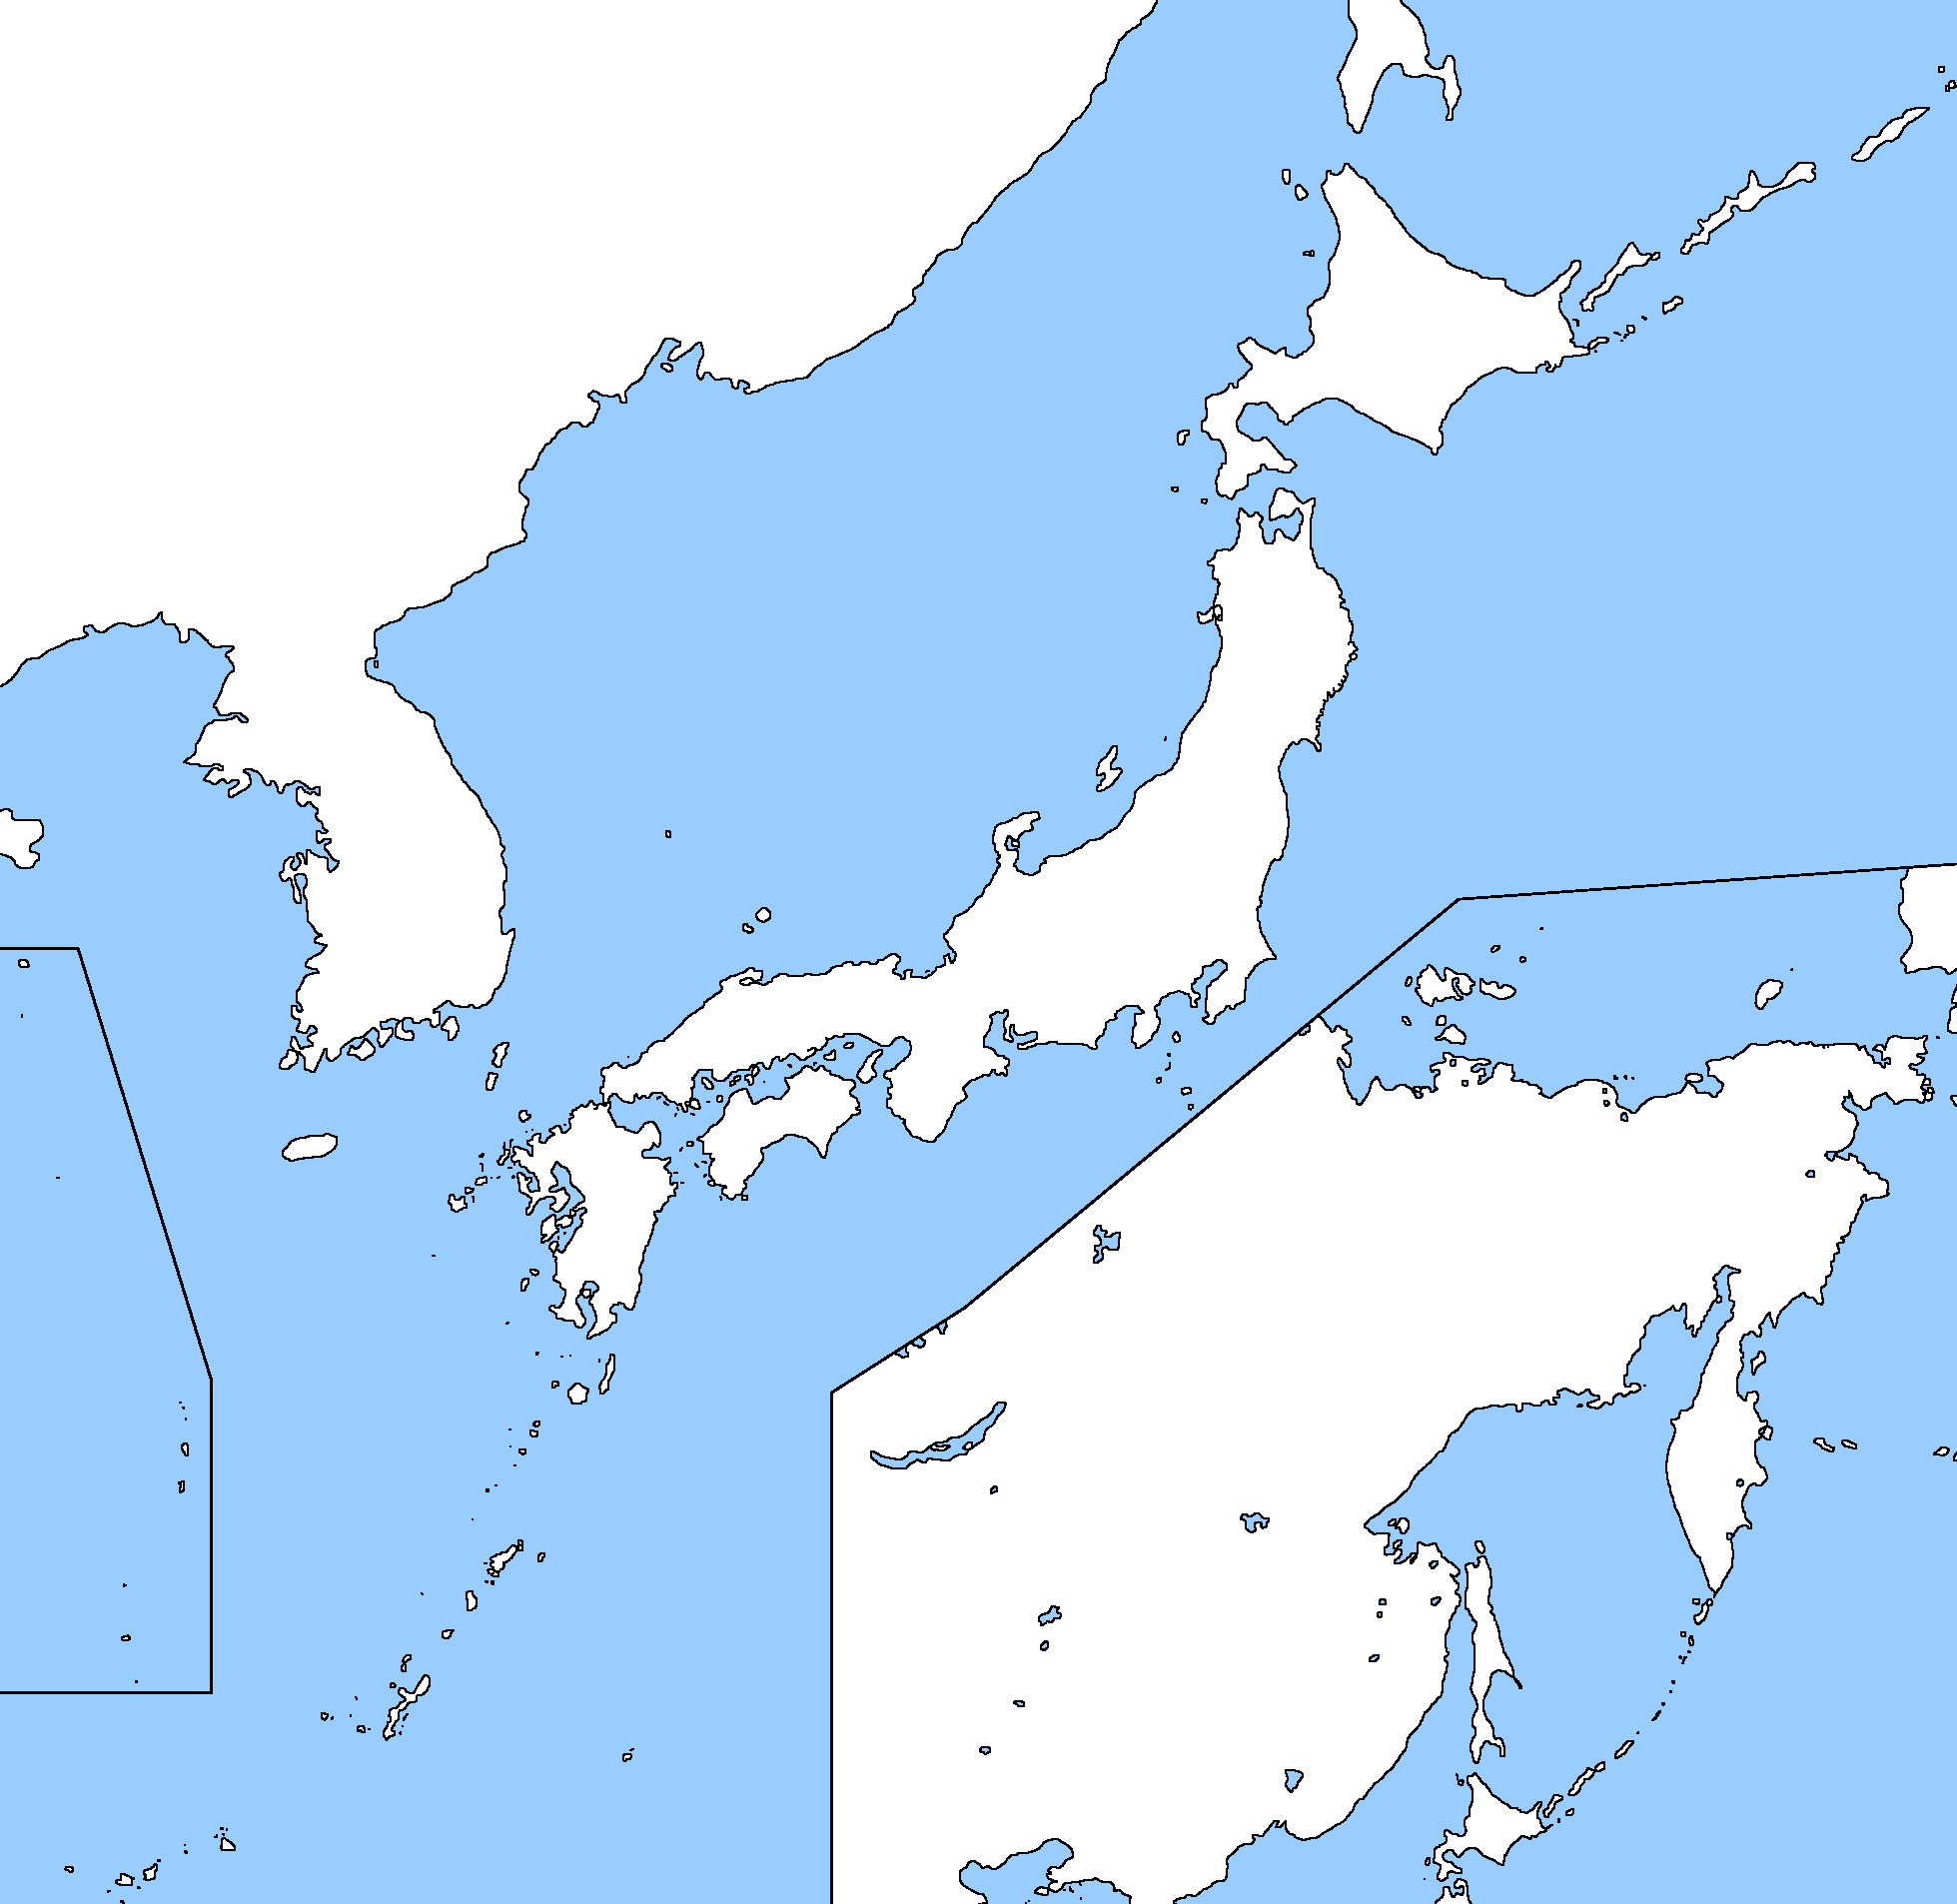 Image Blank Map Of Japan And Korea Including Russian Far East - Japan map 2015